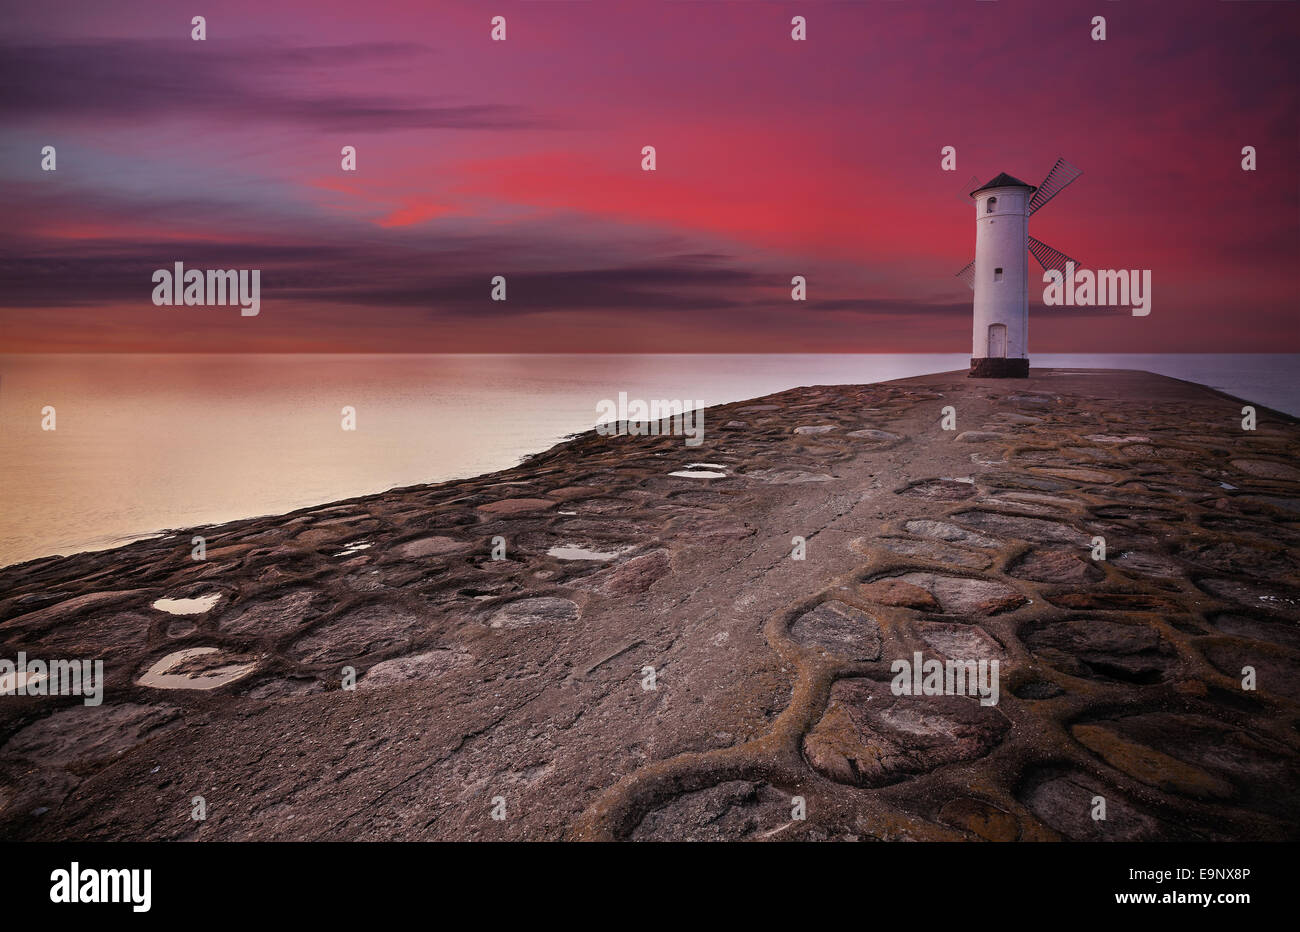 Lighthouse windmill with dramatic sunset sky. - Stock Image